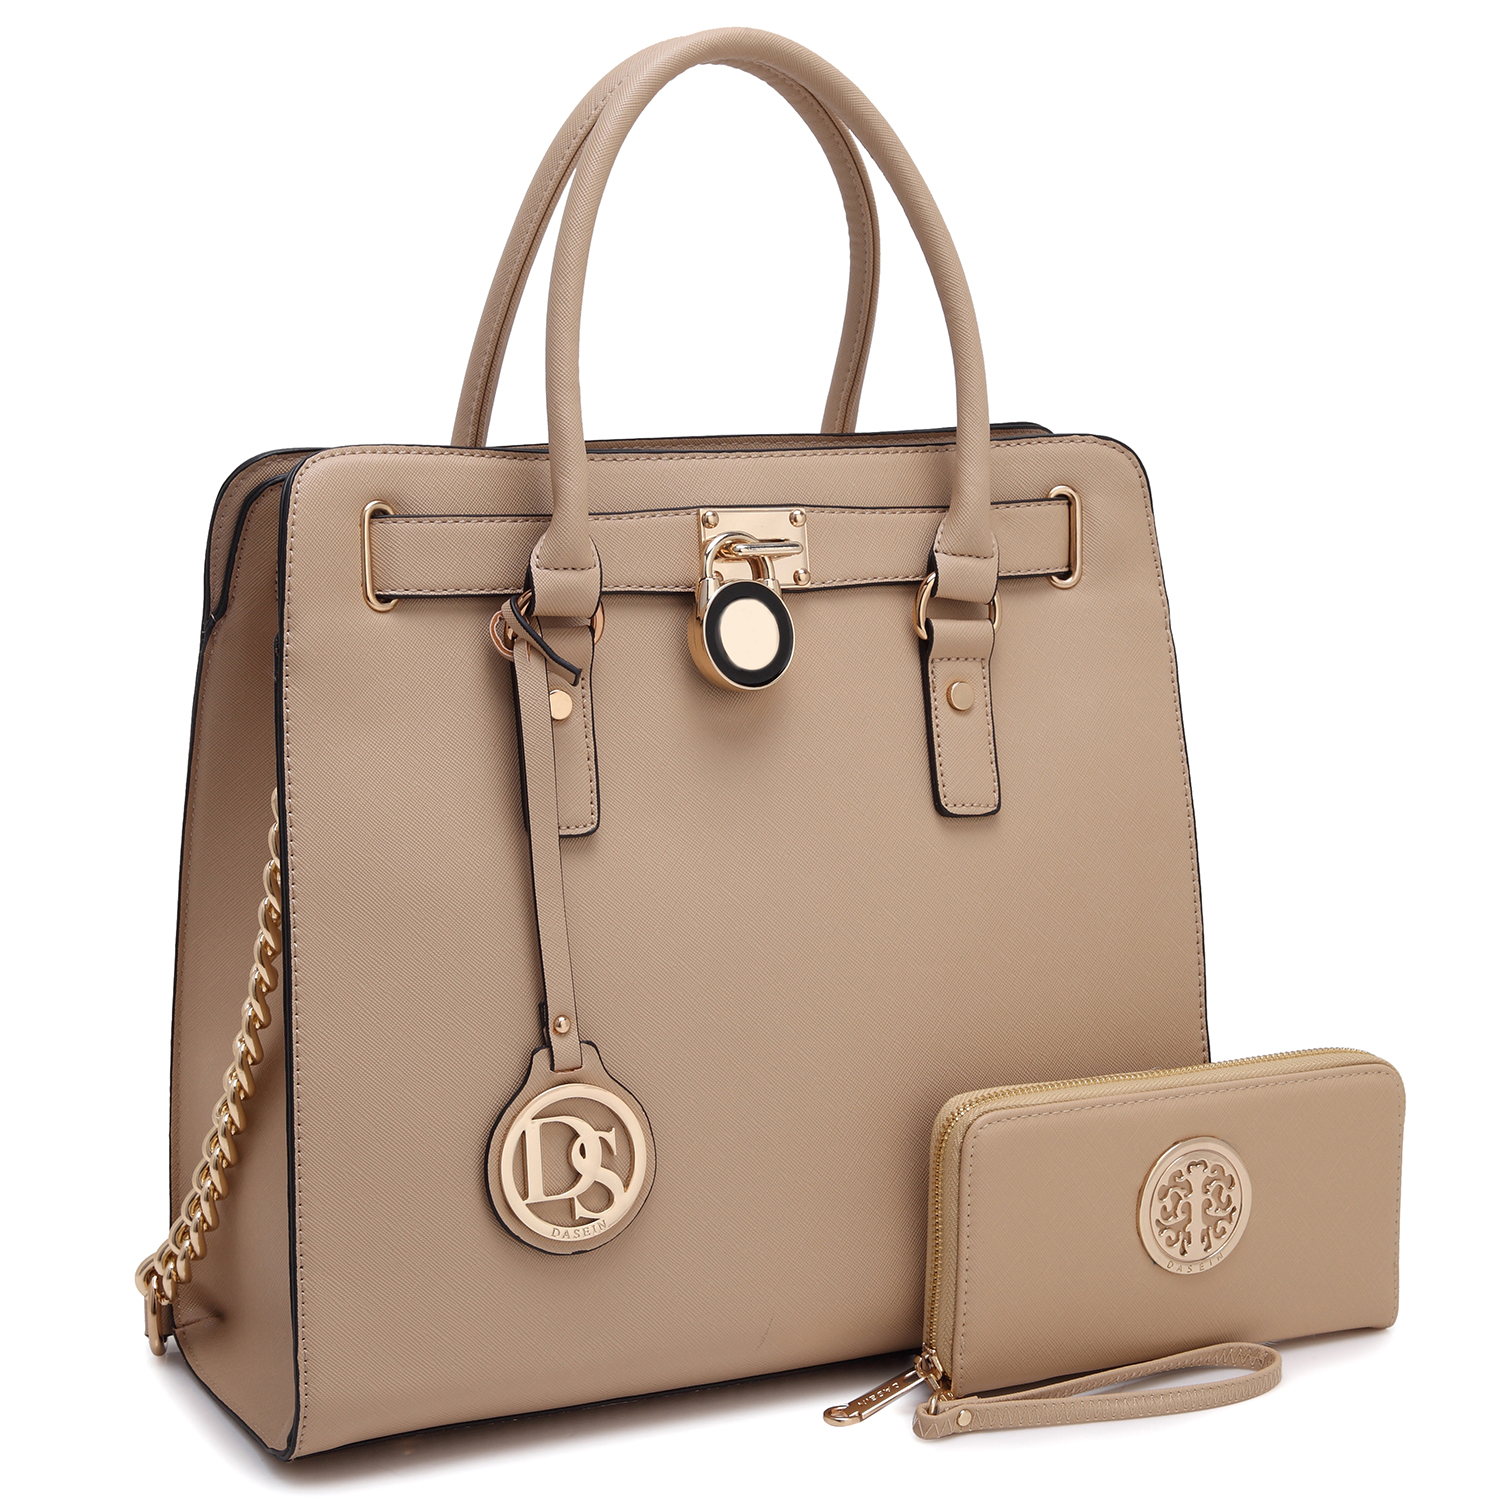 Dasein Large Saffiano Leather Satchel with Matching Wallet